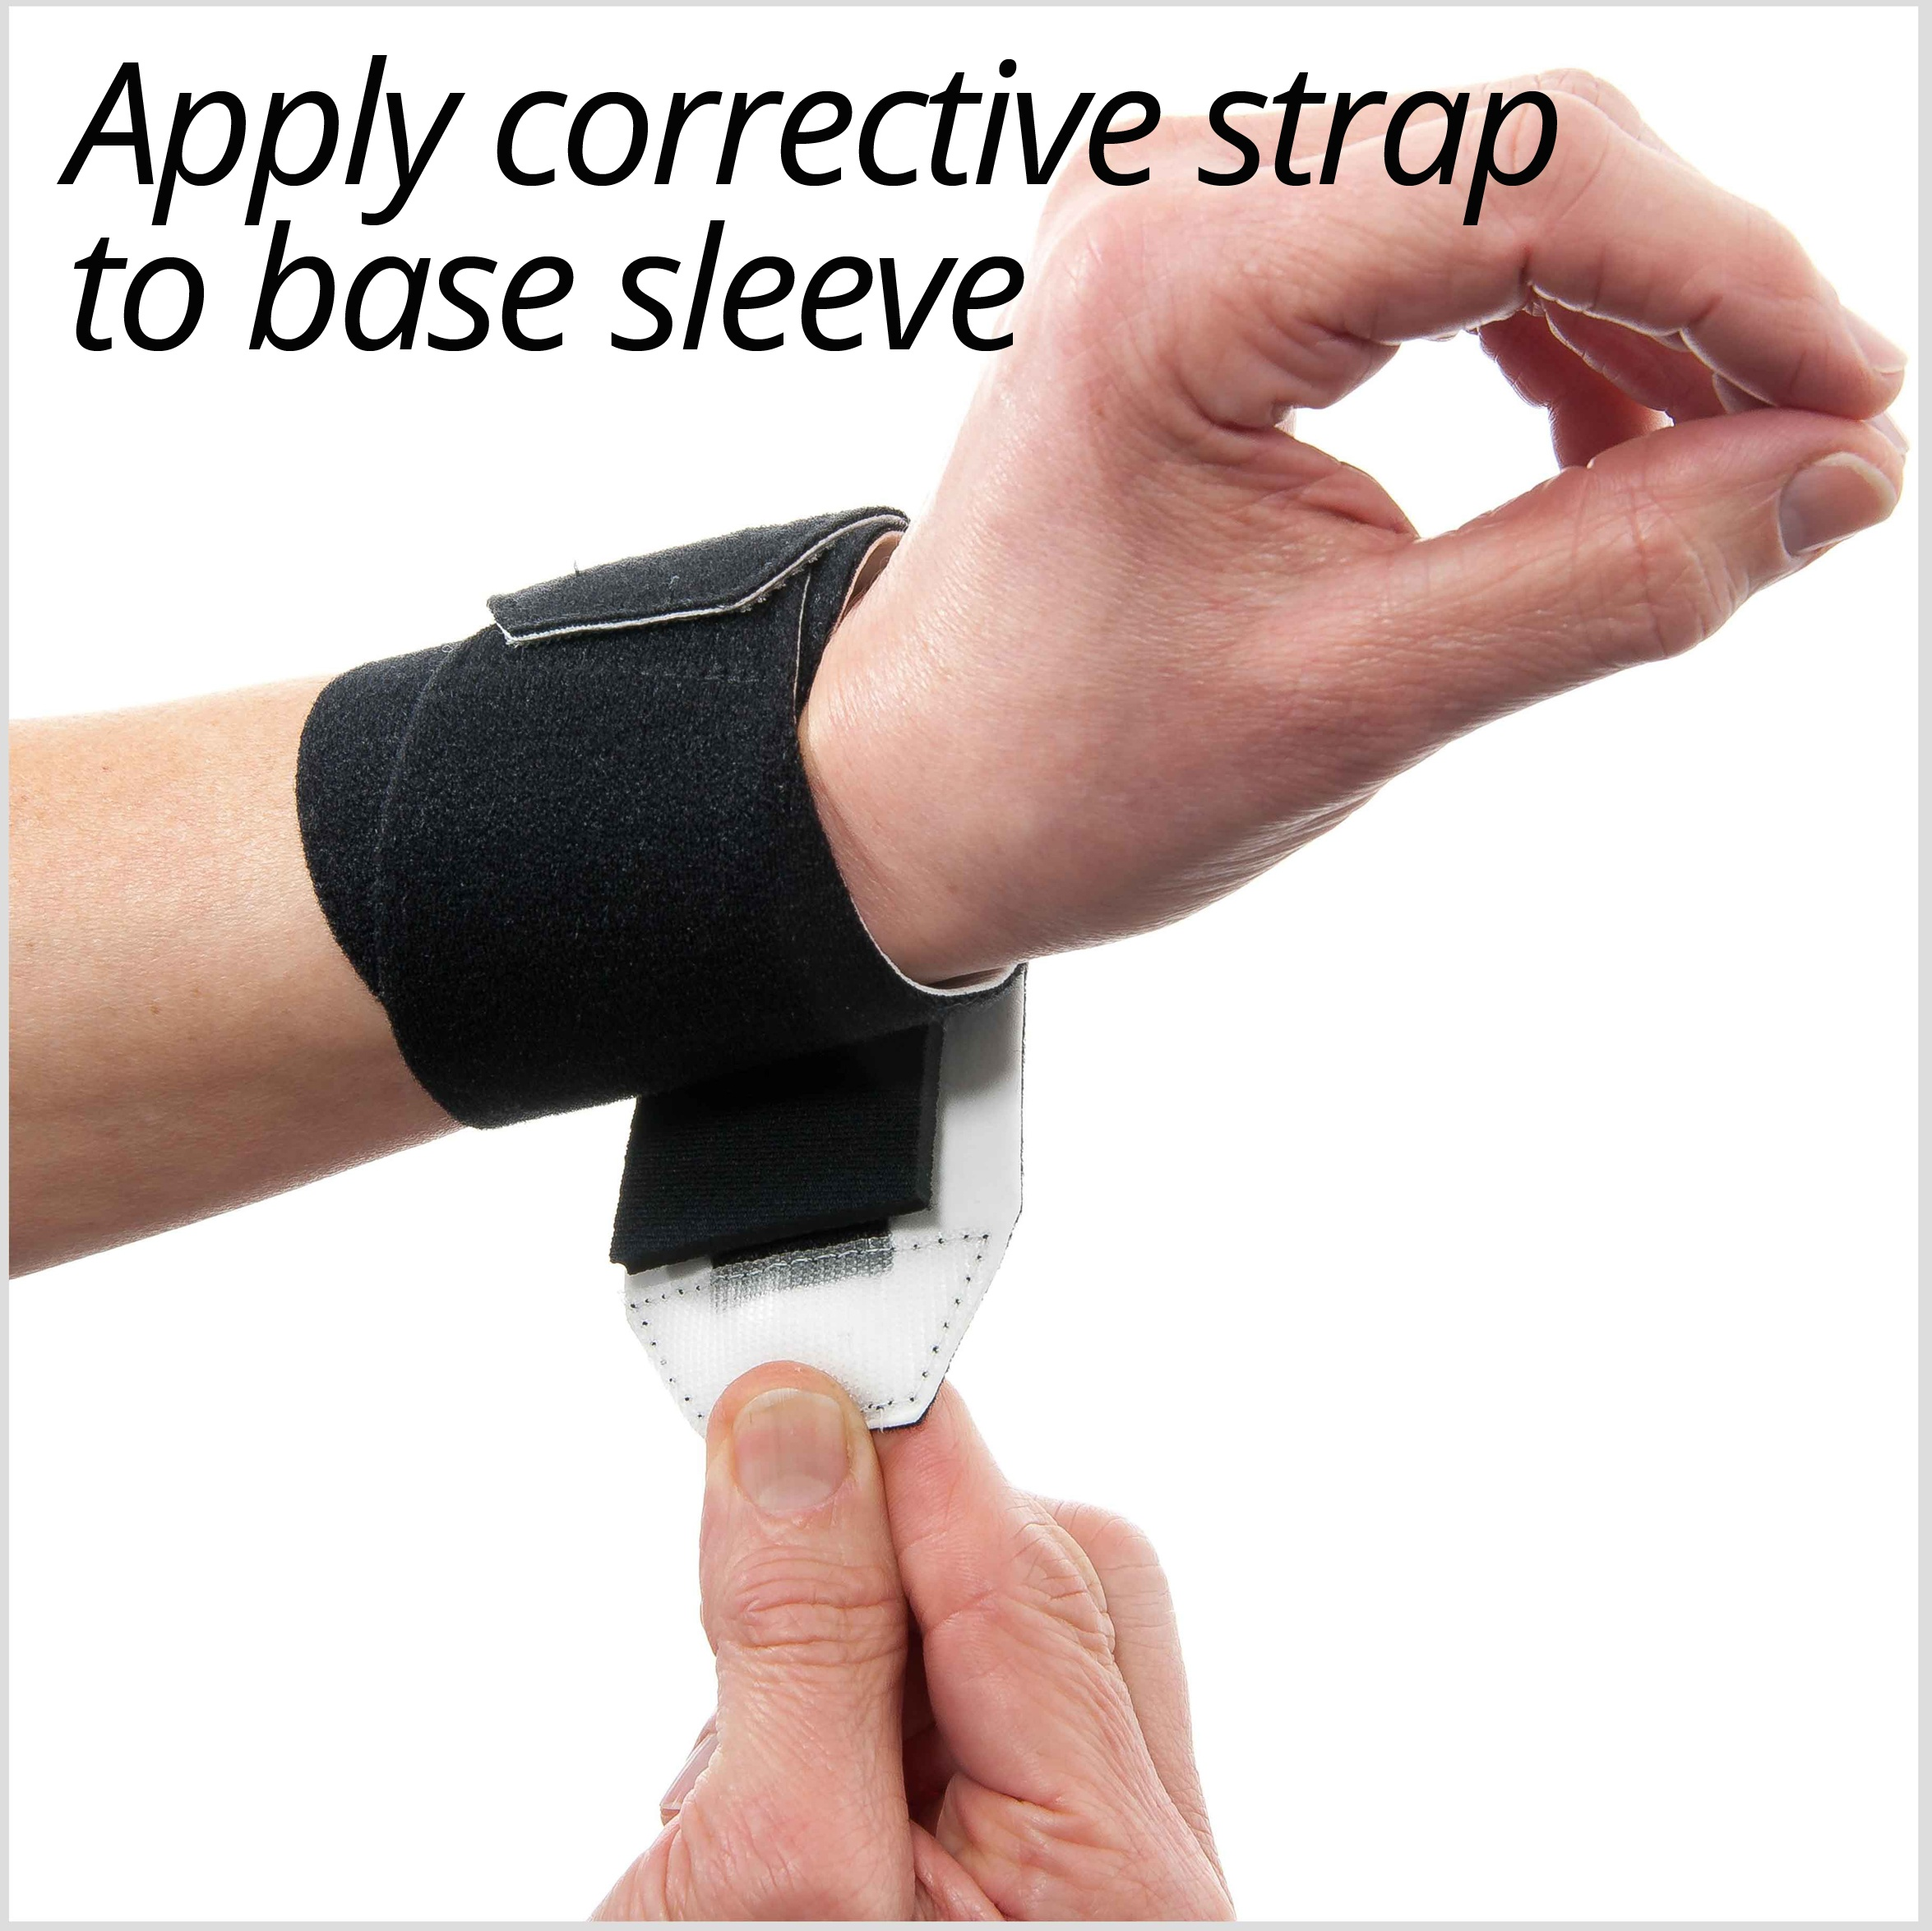 3pp Wrist P.O.P. apply corrective strap to the base sleeve